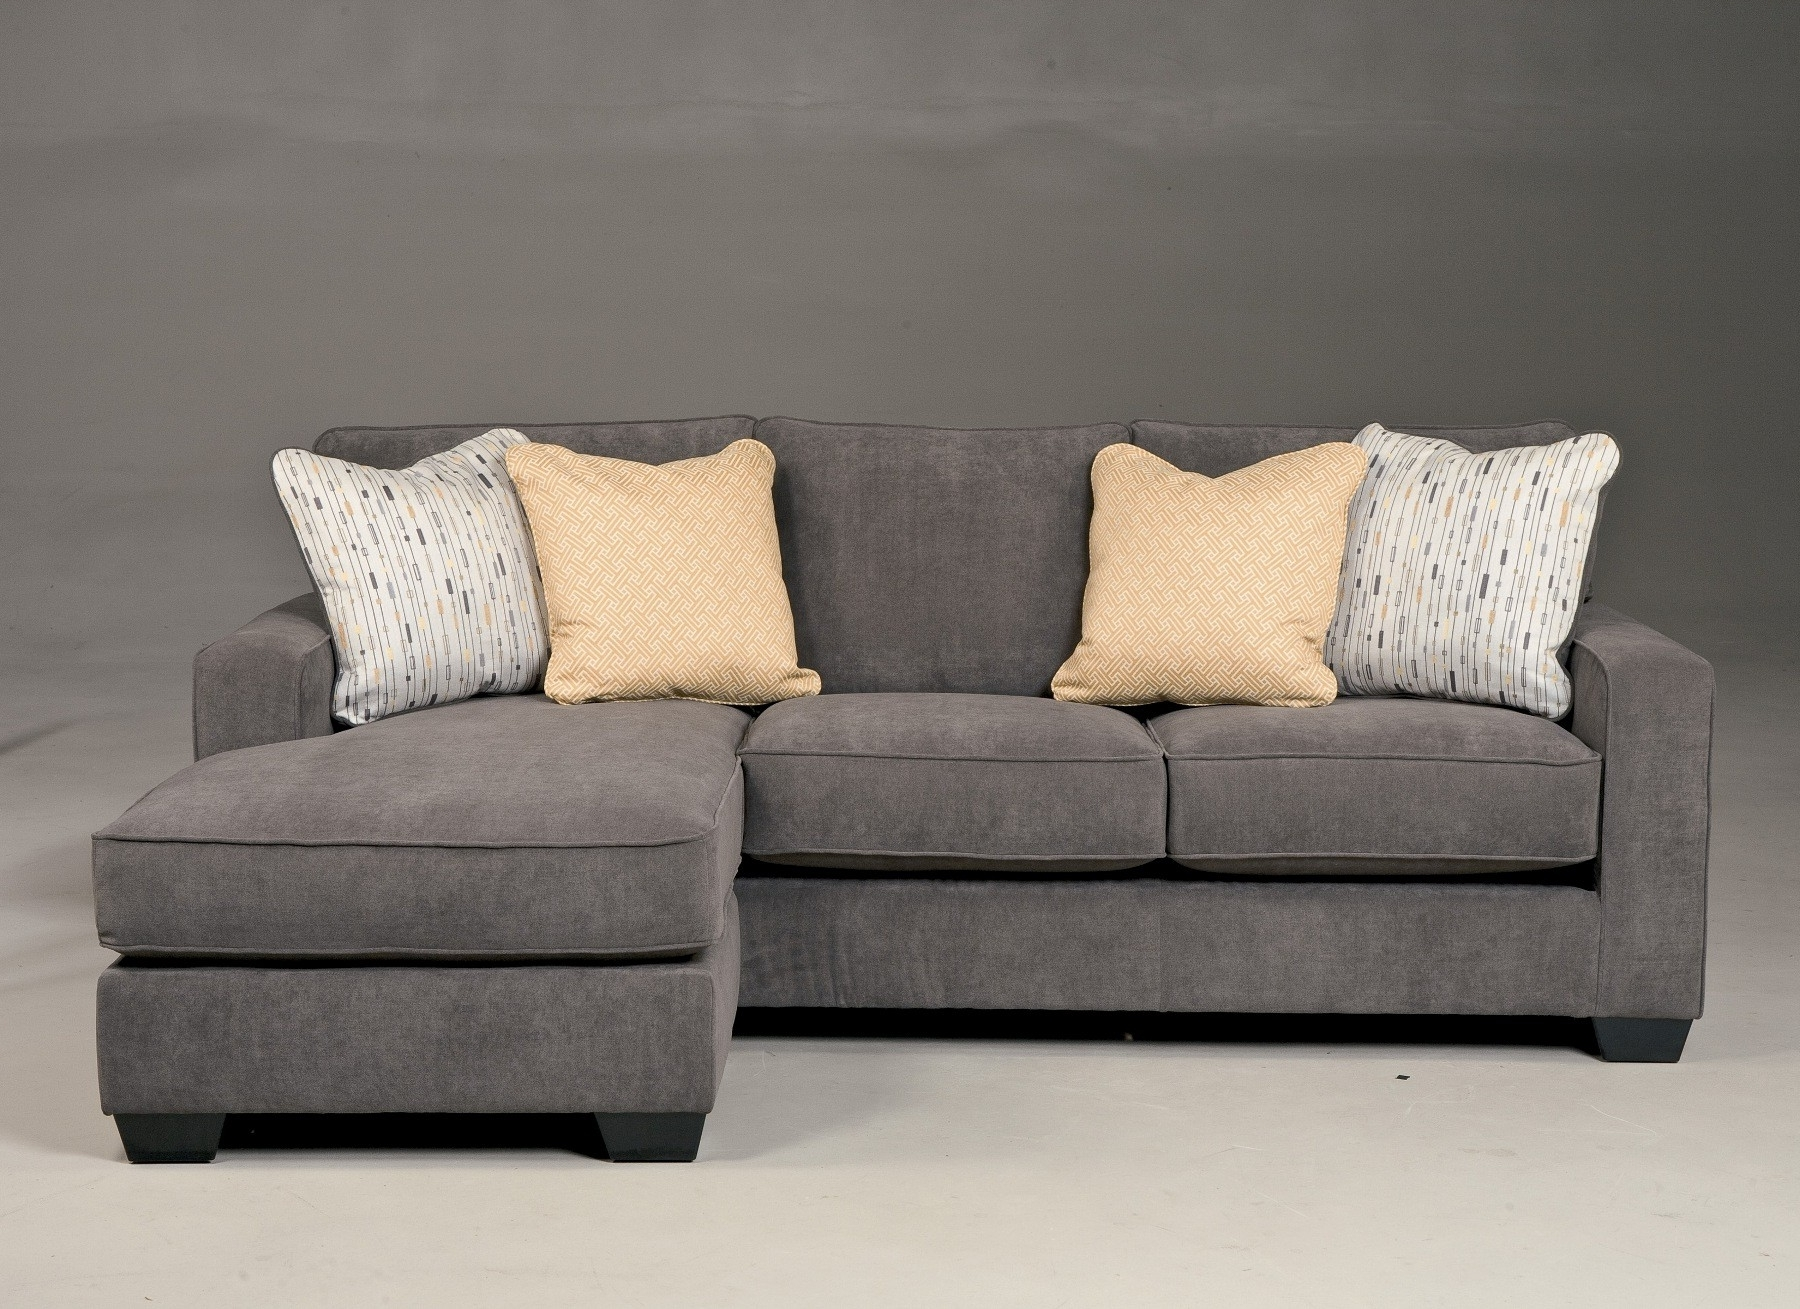 Trendy $719 – Ashley – Hodan Marble Sofa With Chaise Good Fabric Good Pertaining To Sofa Bed Chaises (View 14 of 15)